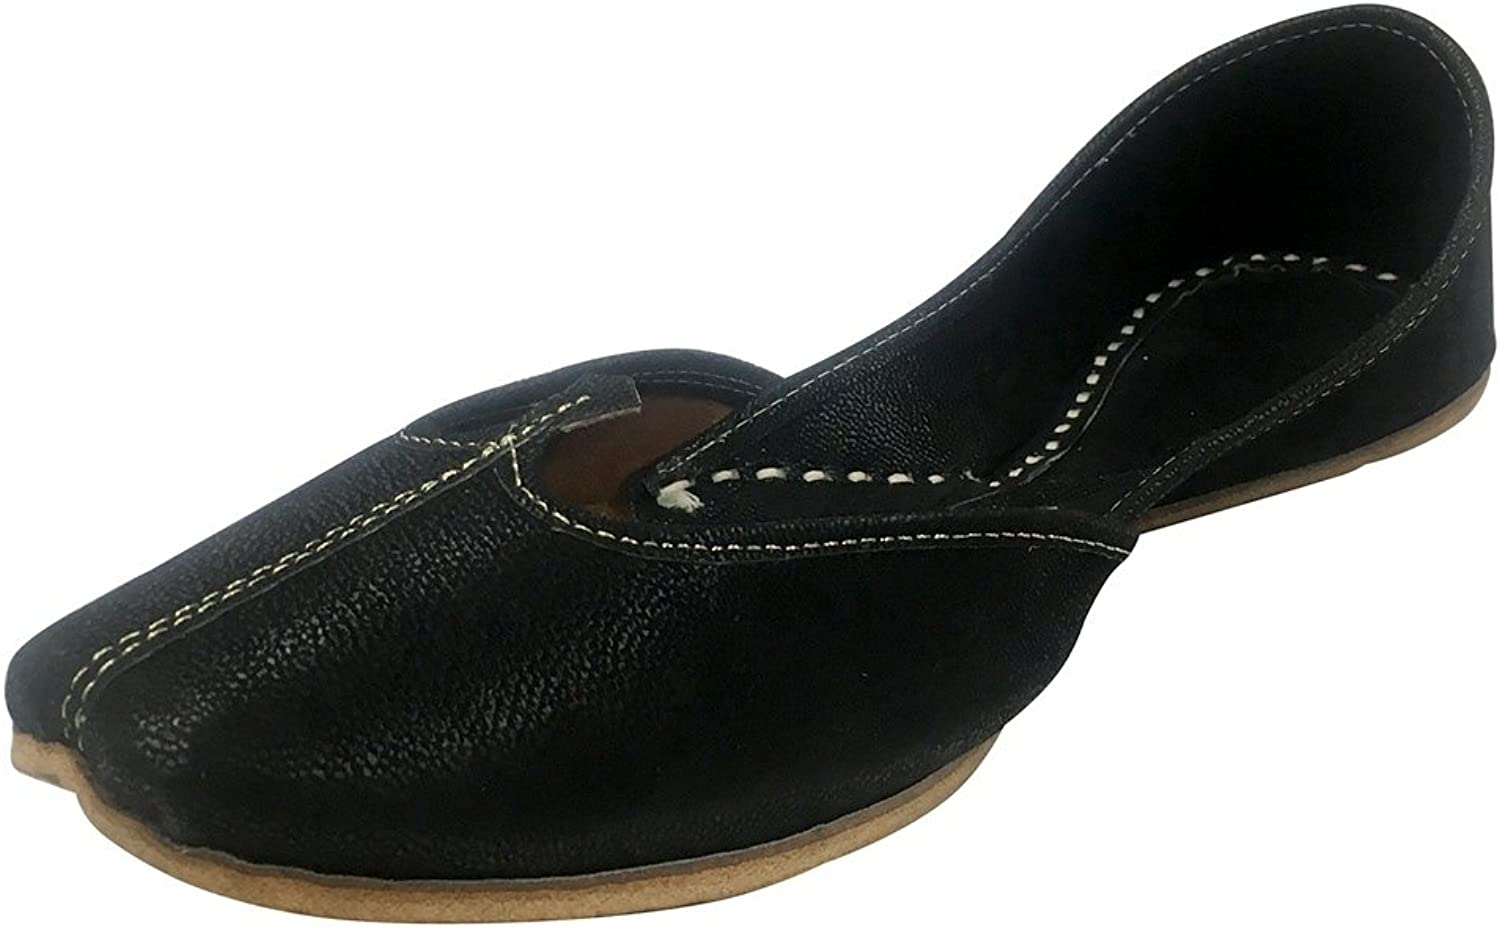 Step n Style Indian shoes Punjabi Jutti Black shoes Khussa shoes Mojari Flat Juti